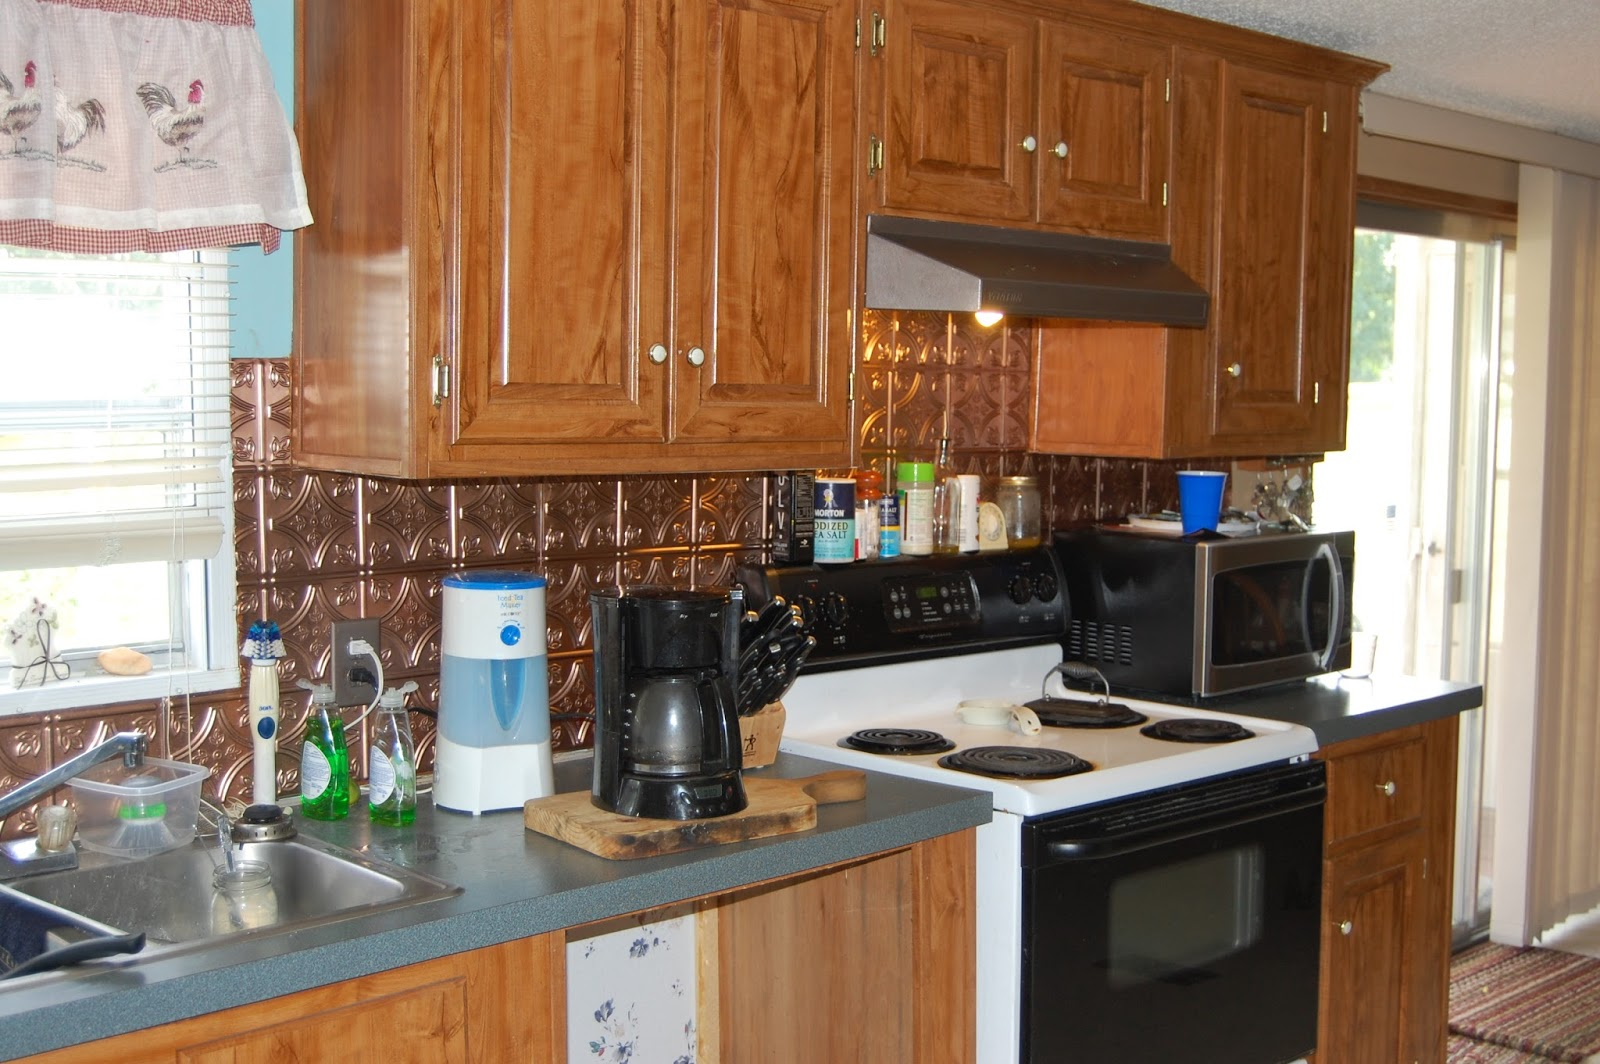 mobile home kitchen cabinets for sale rustic island light fixtures pictures of remodeled homes joy studio design